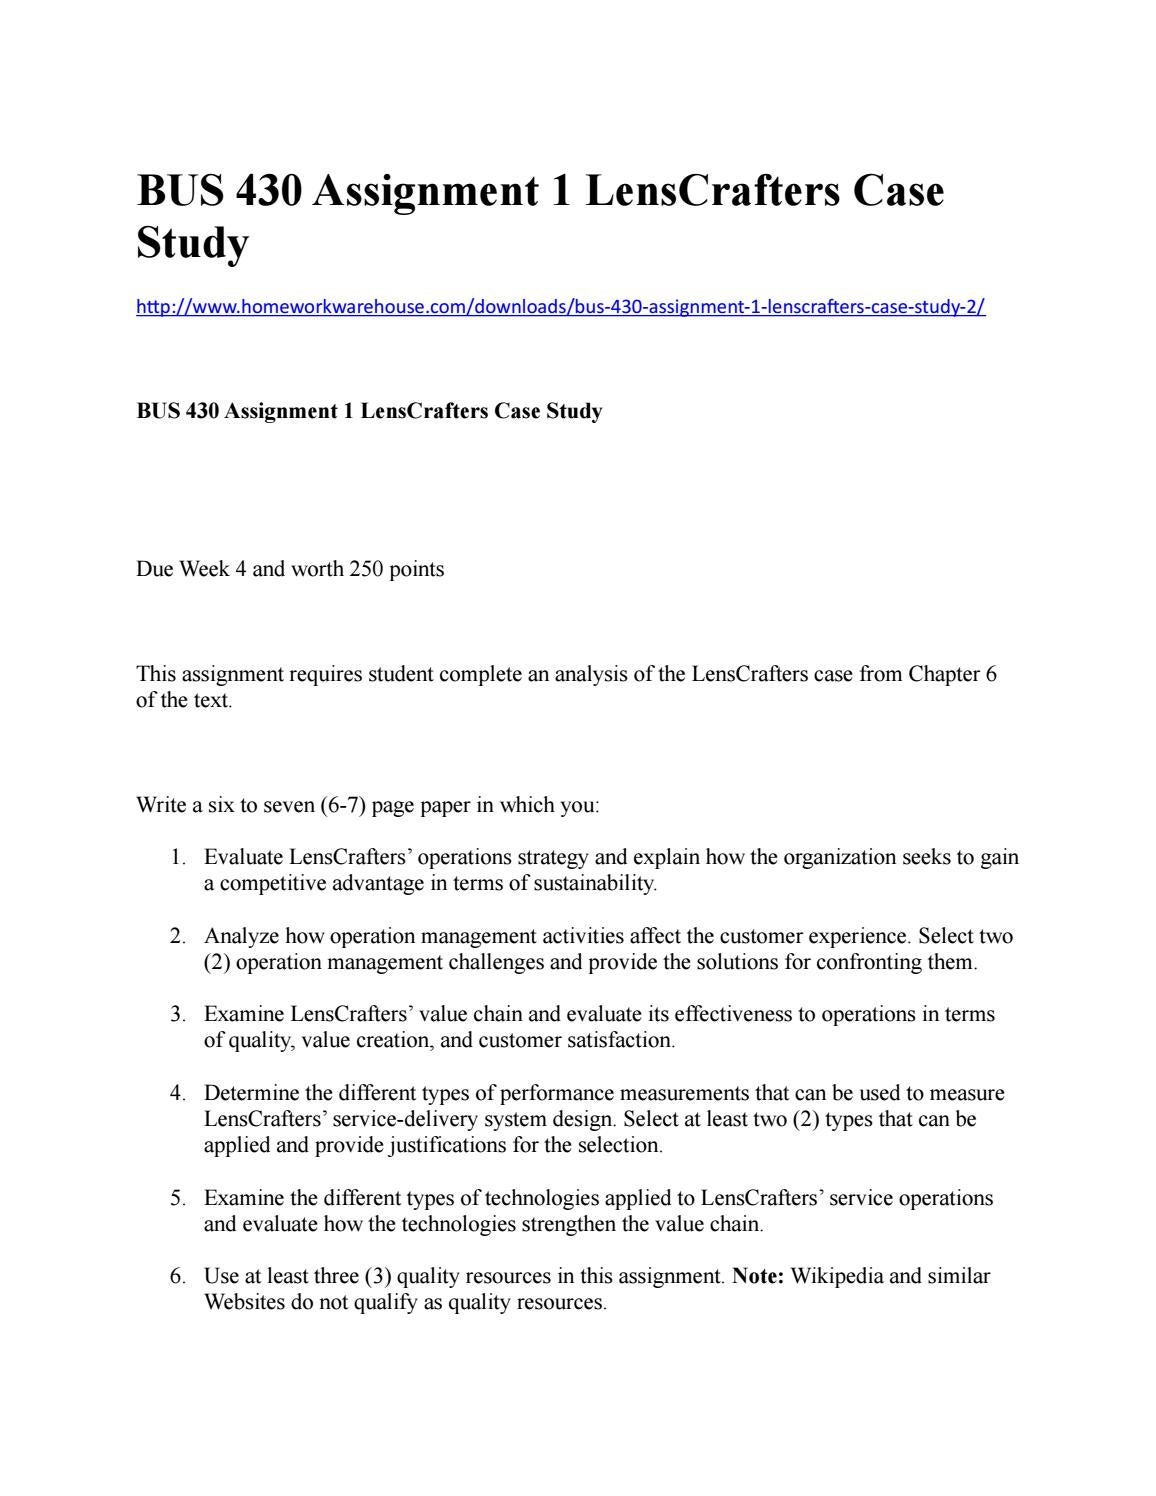 udb301 assignment 1 customer satisfaction Customer essays and research papers | examplesessaytodaybiz  customer satisfaction 10  creating value with customer-driven innovation udb301 assignment 1.